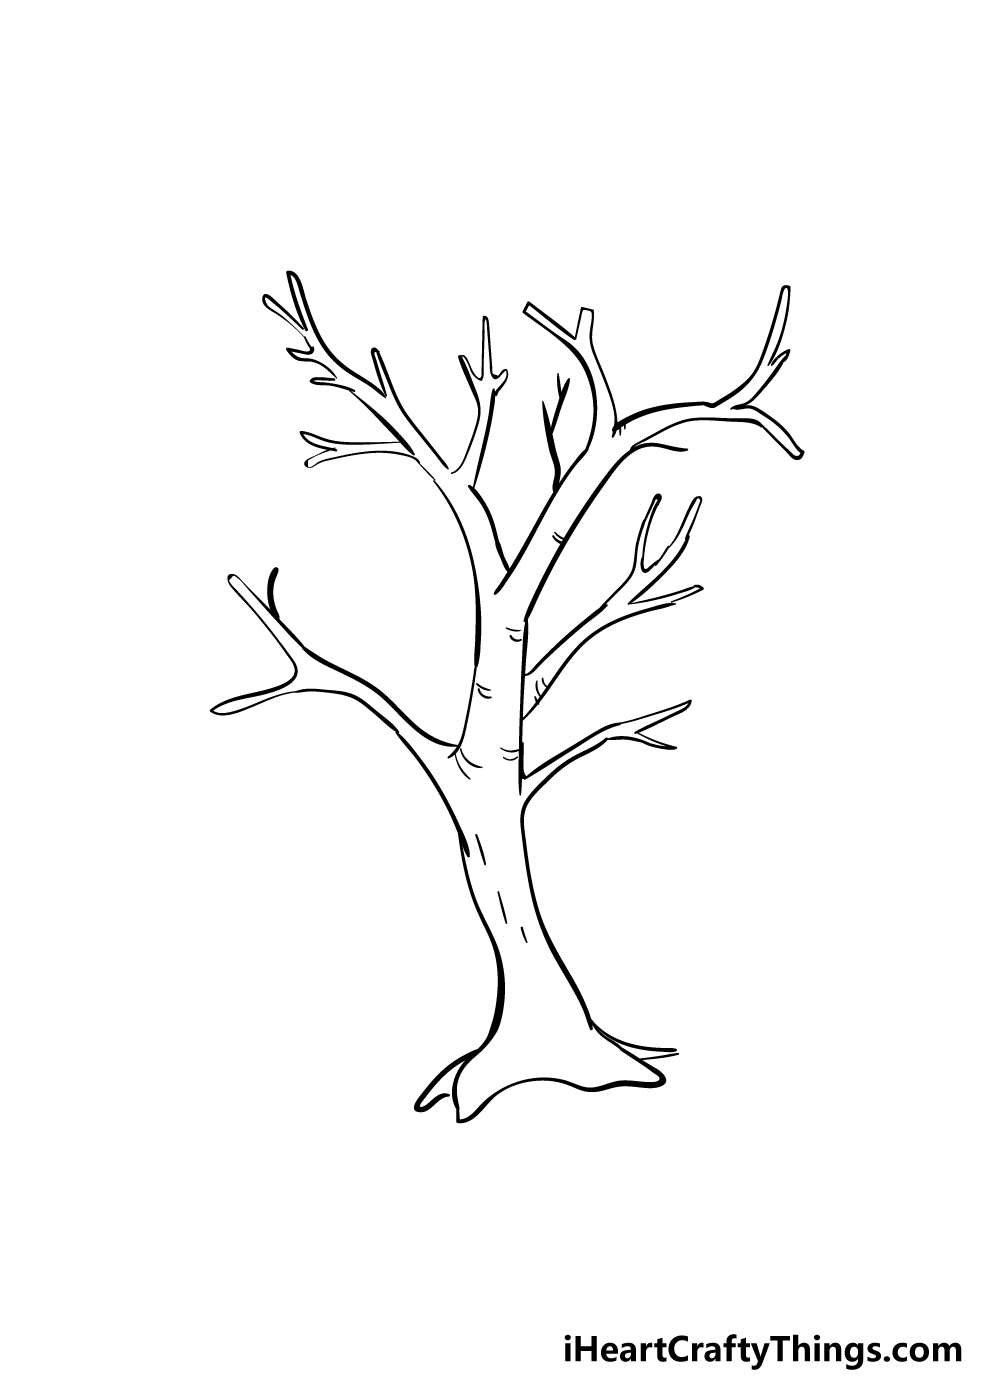 drawing branches step 5